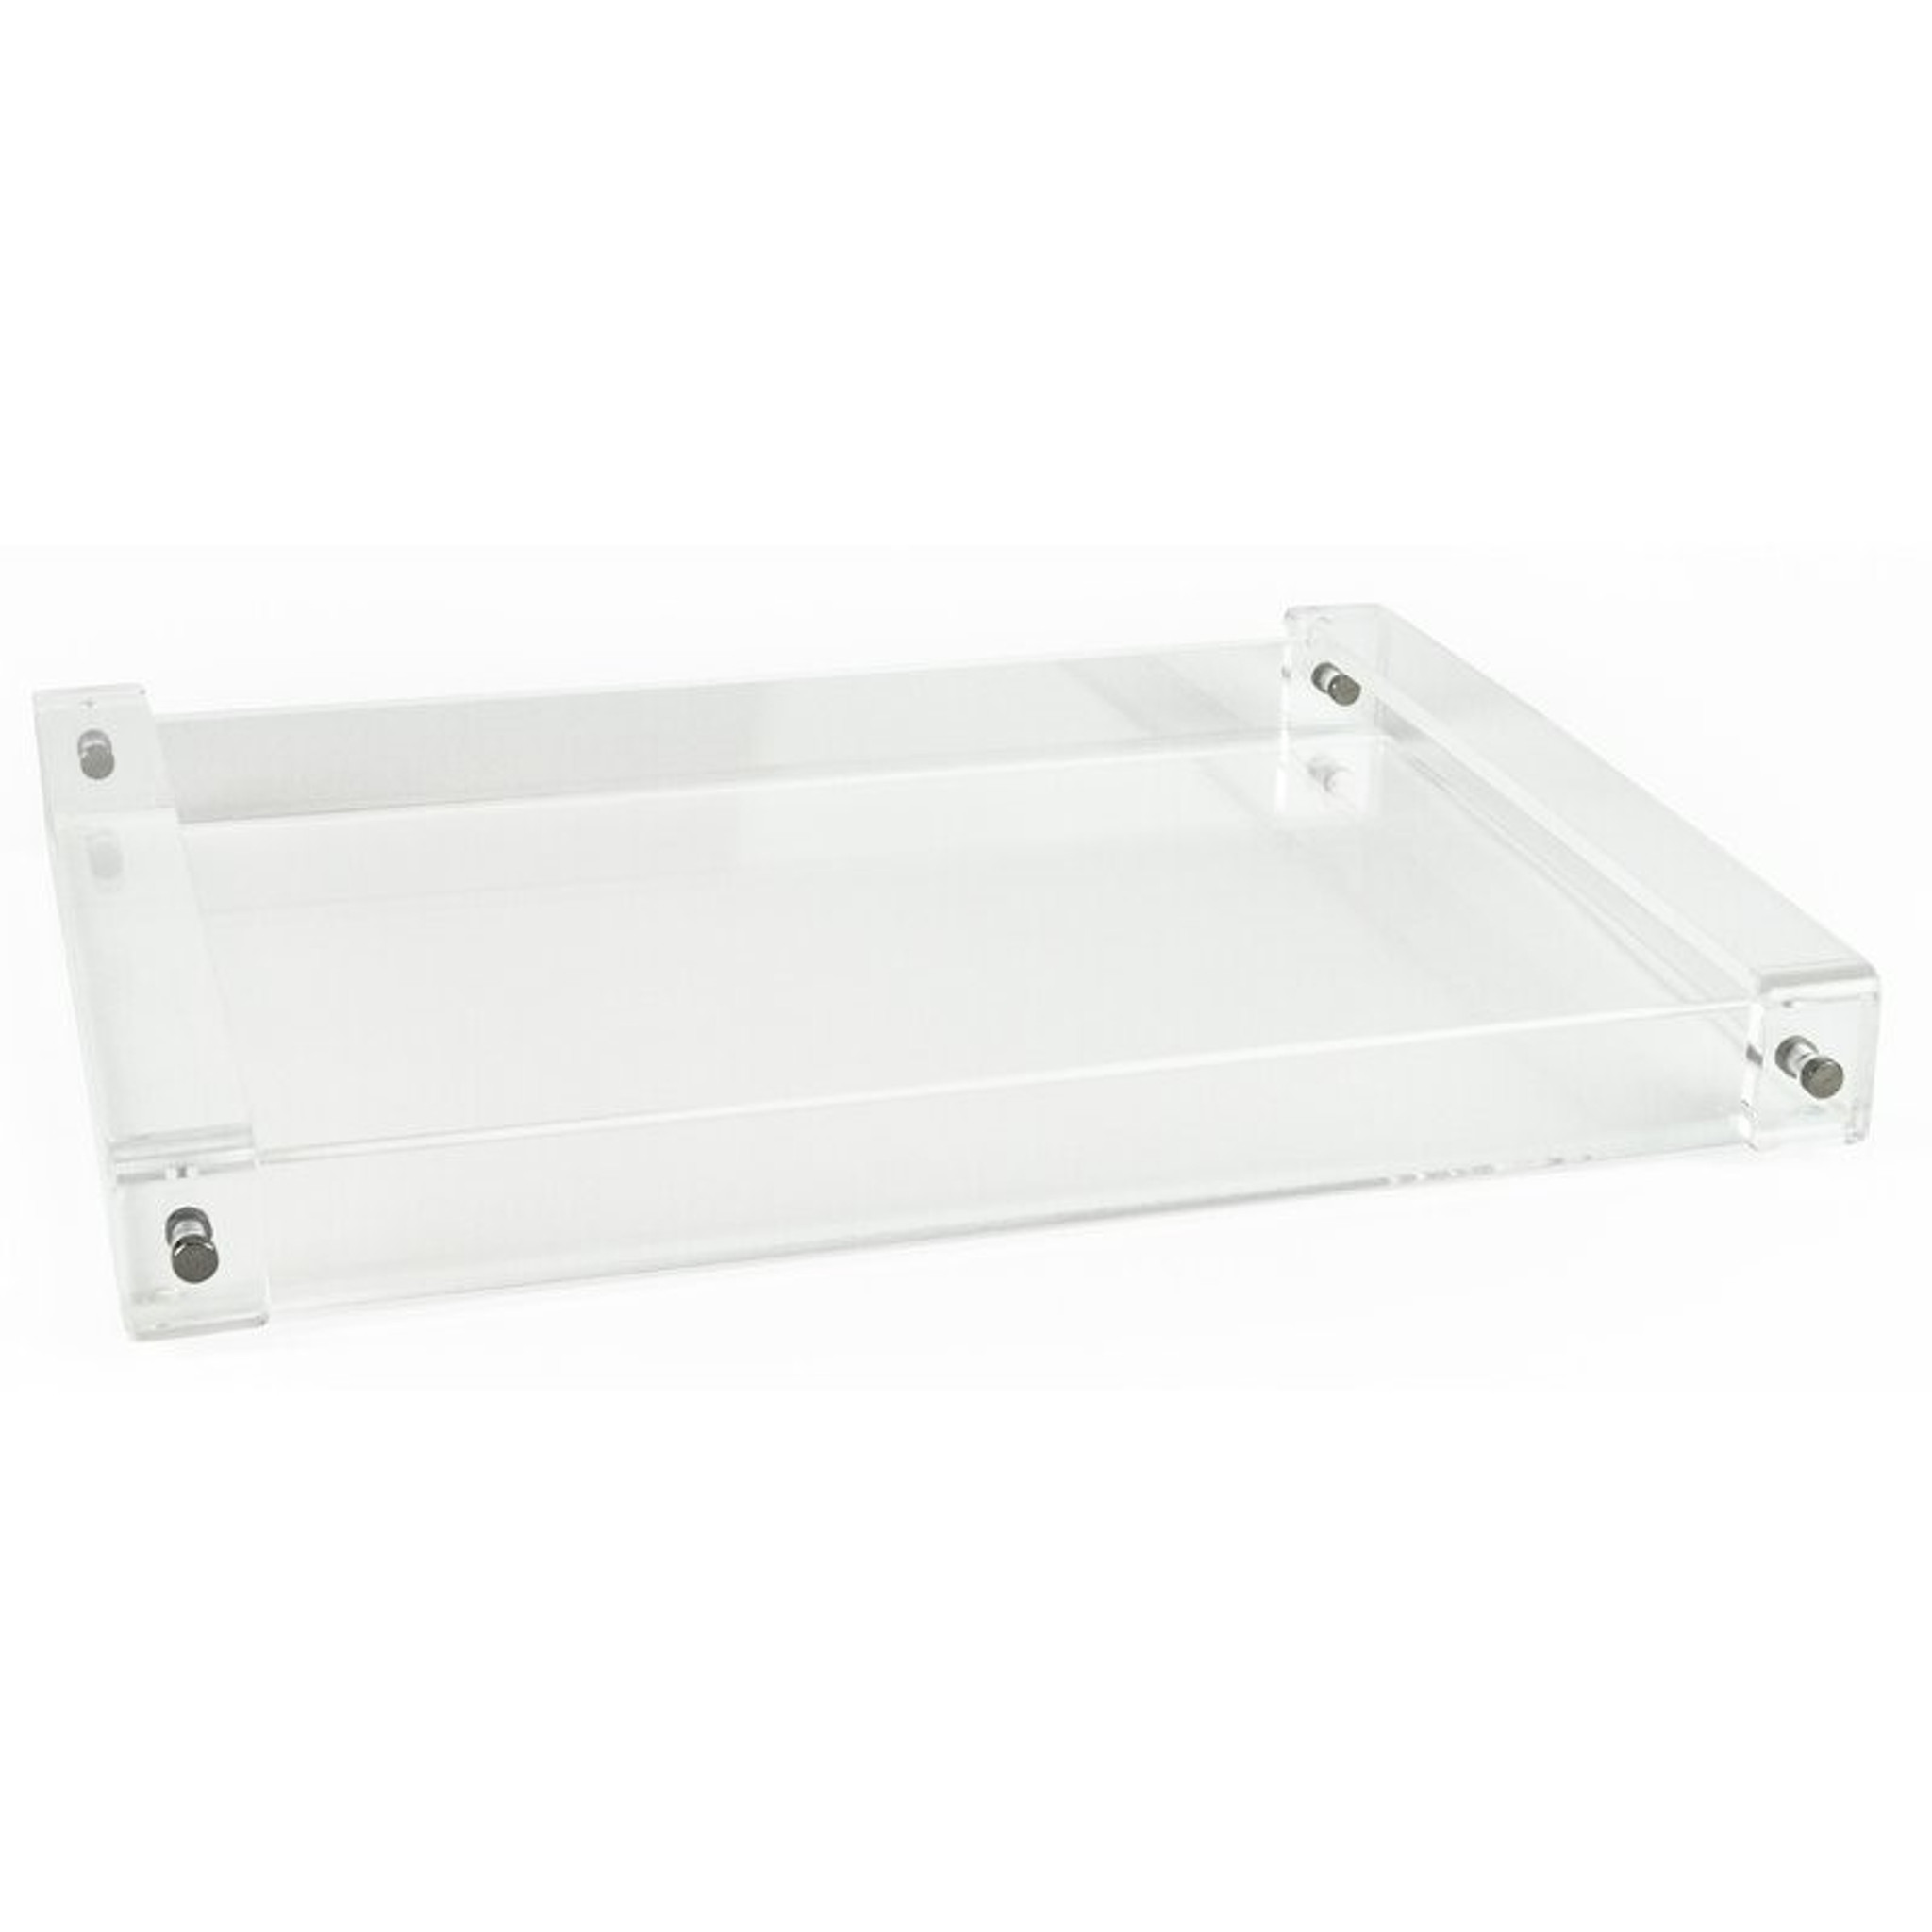 extra large acrylic serving tray with handles clear lucite